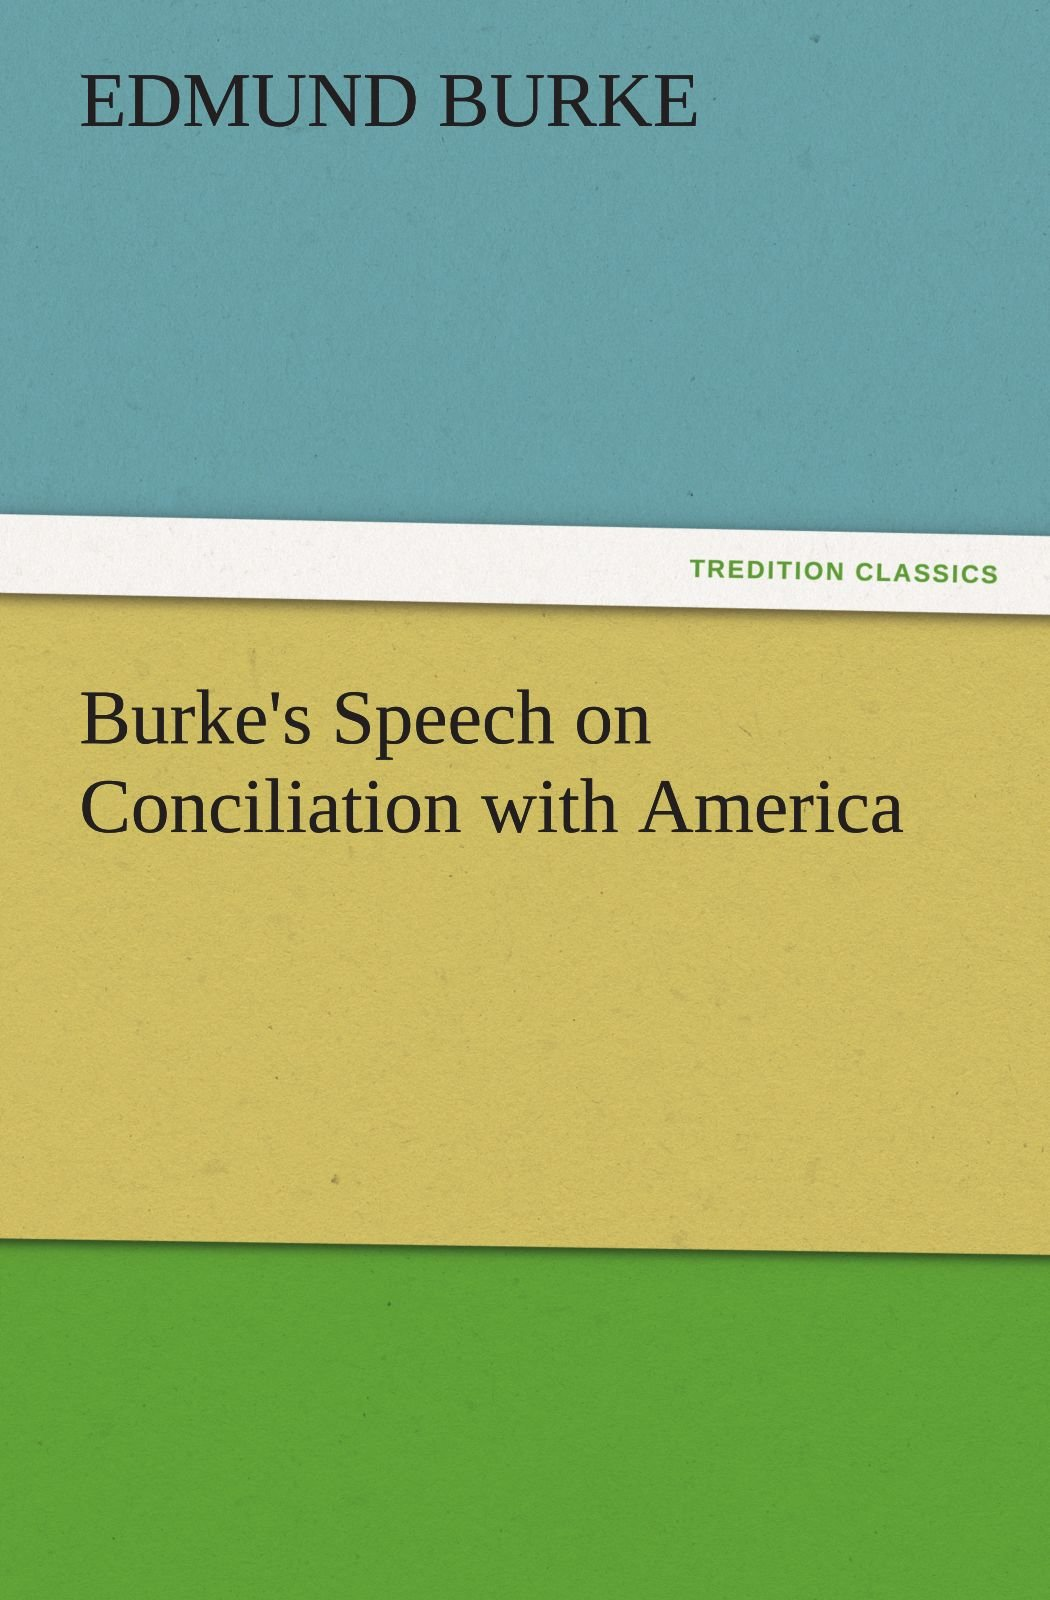 Burke's Speech on Conciliation with America (TREDITION CLASSICS) ebook